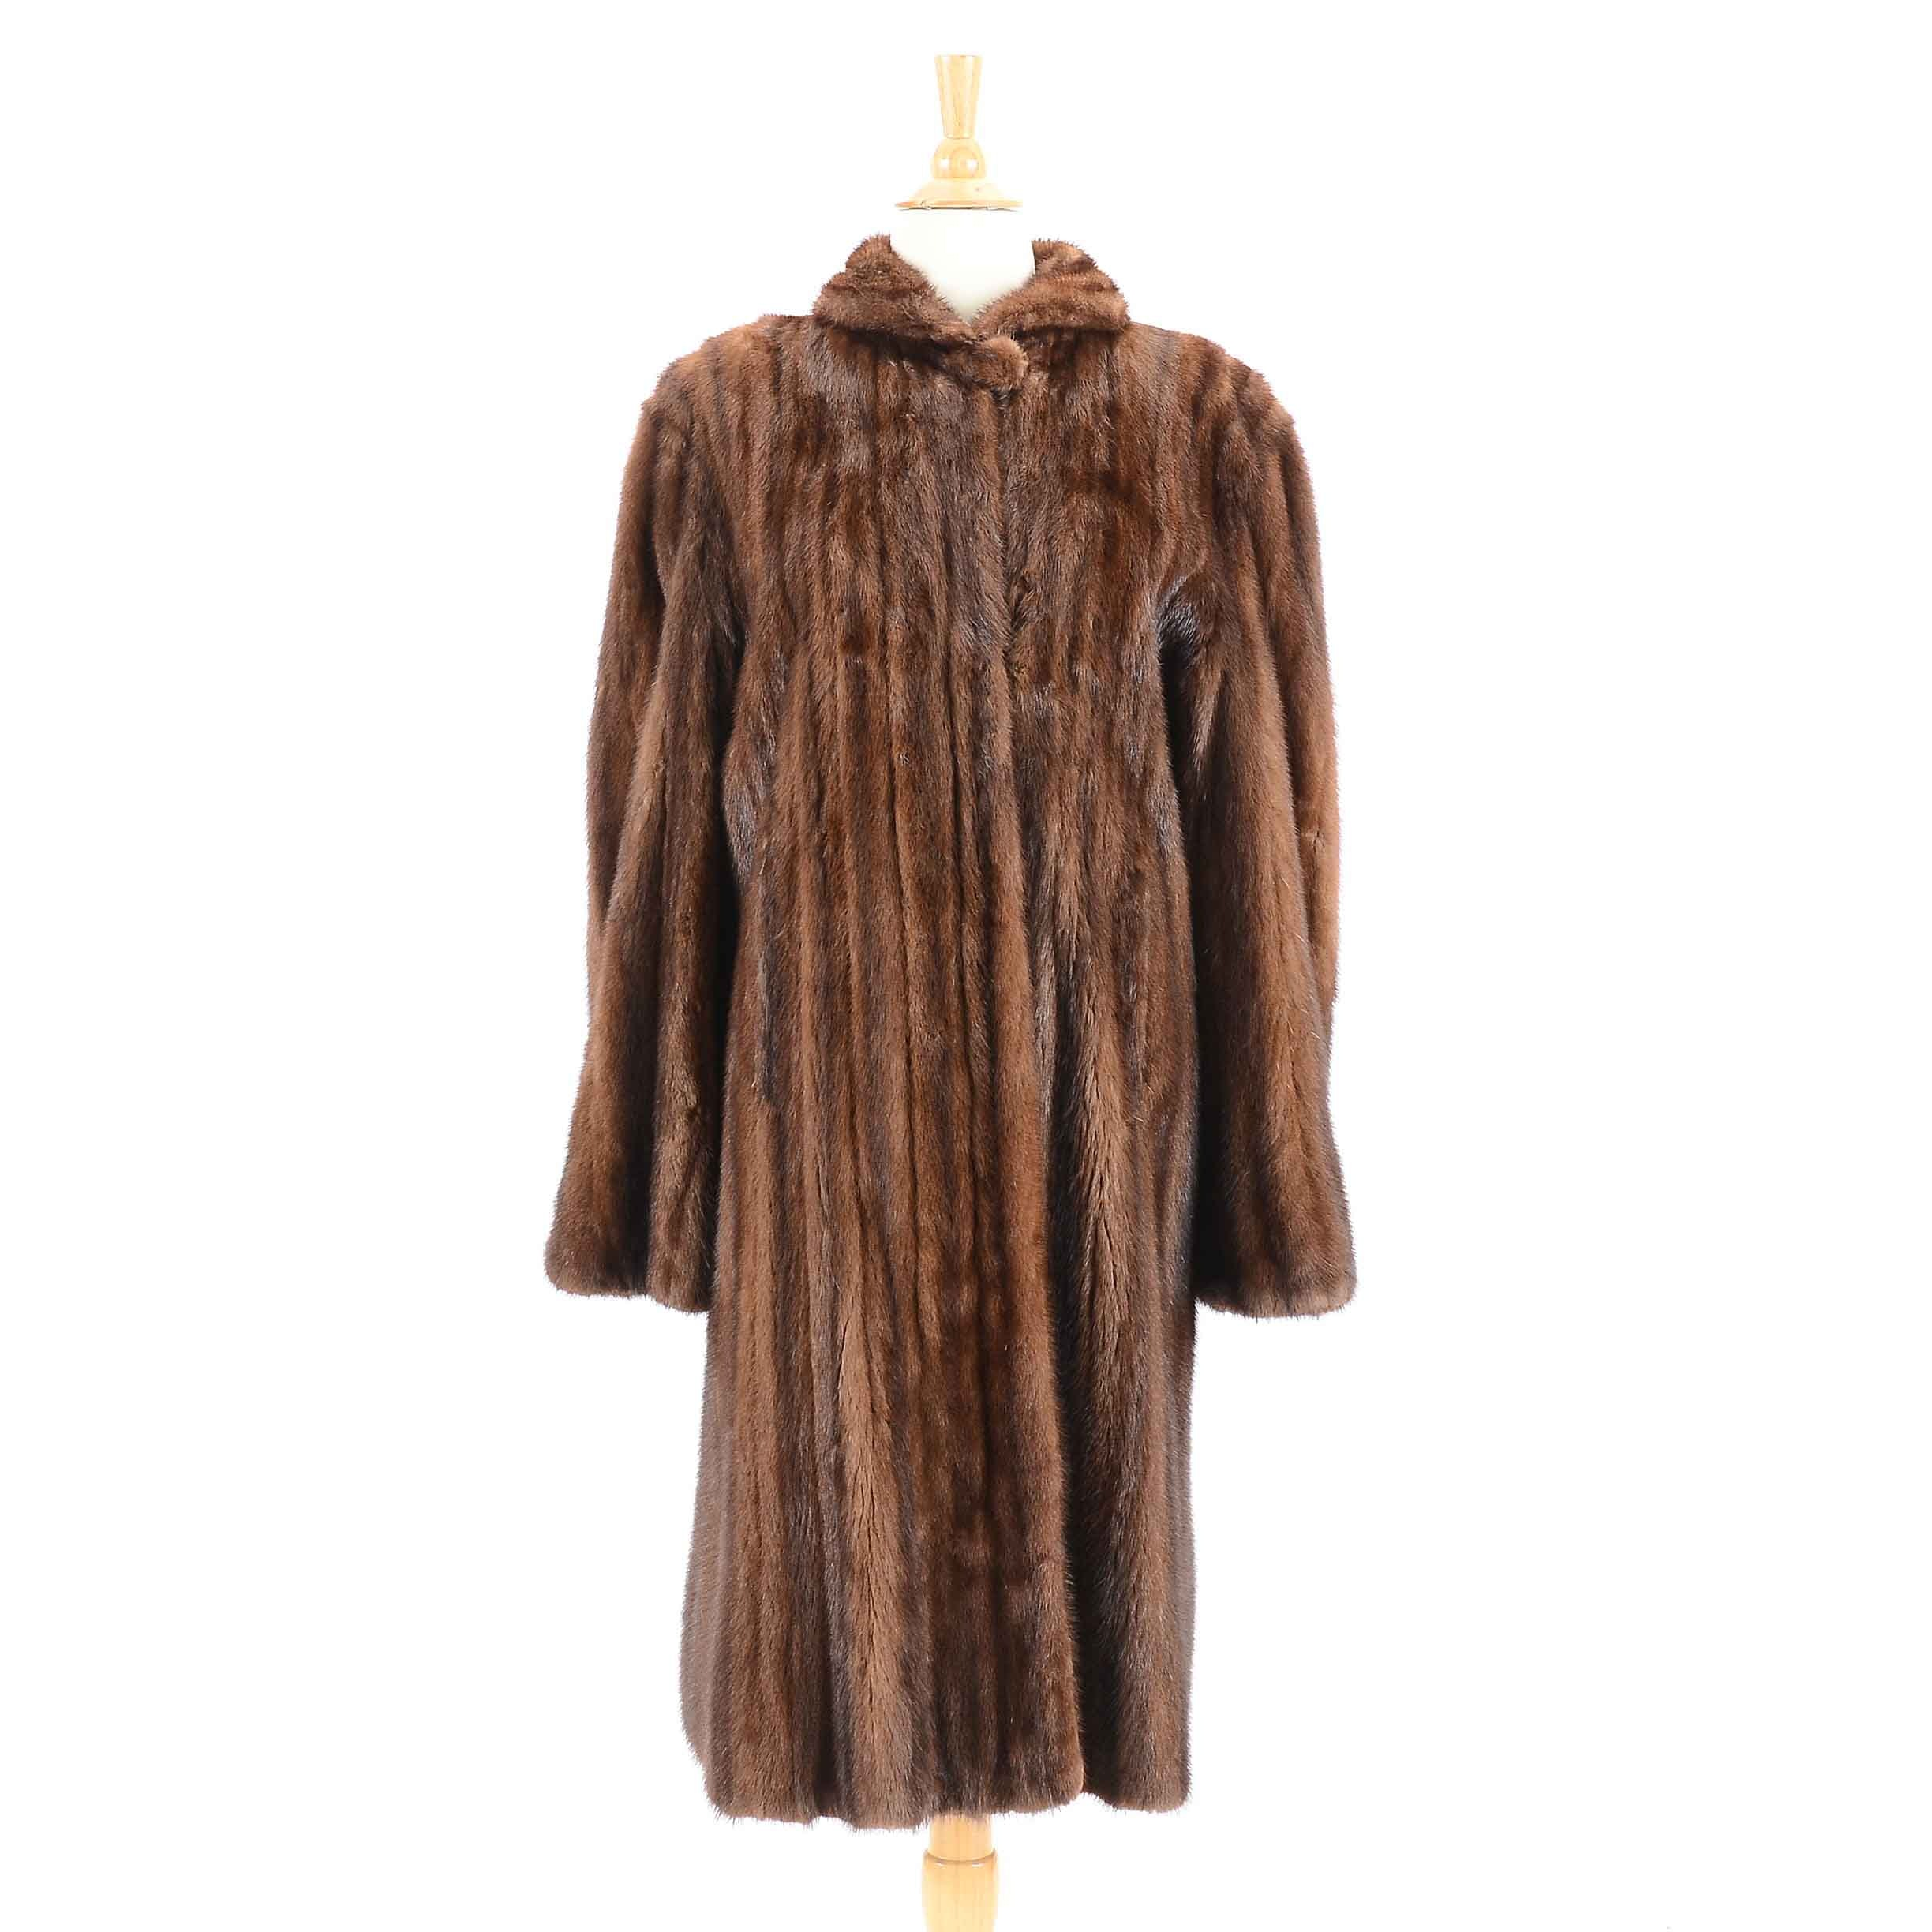 Vintage Mink Fur Swing Coat